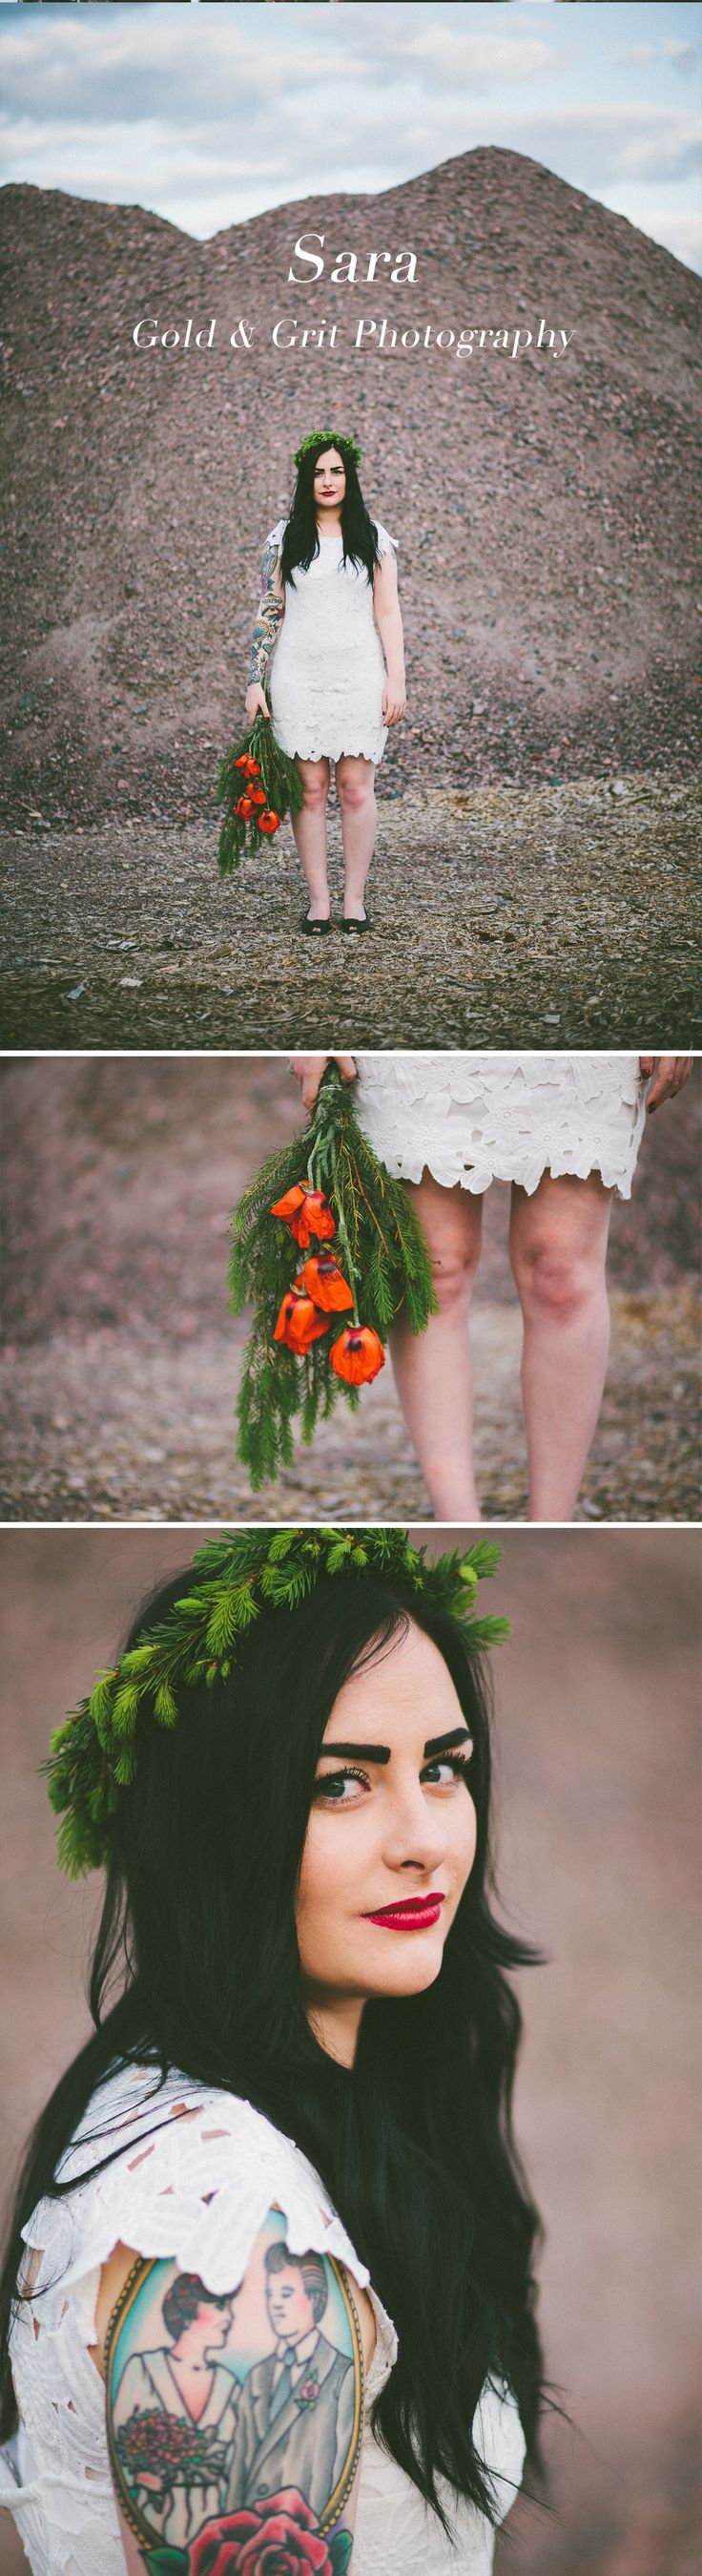 Quirky countryside wedding photography with some attitude + tattoos / Kumla, Sweden / Gold and Grit Photography